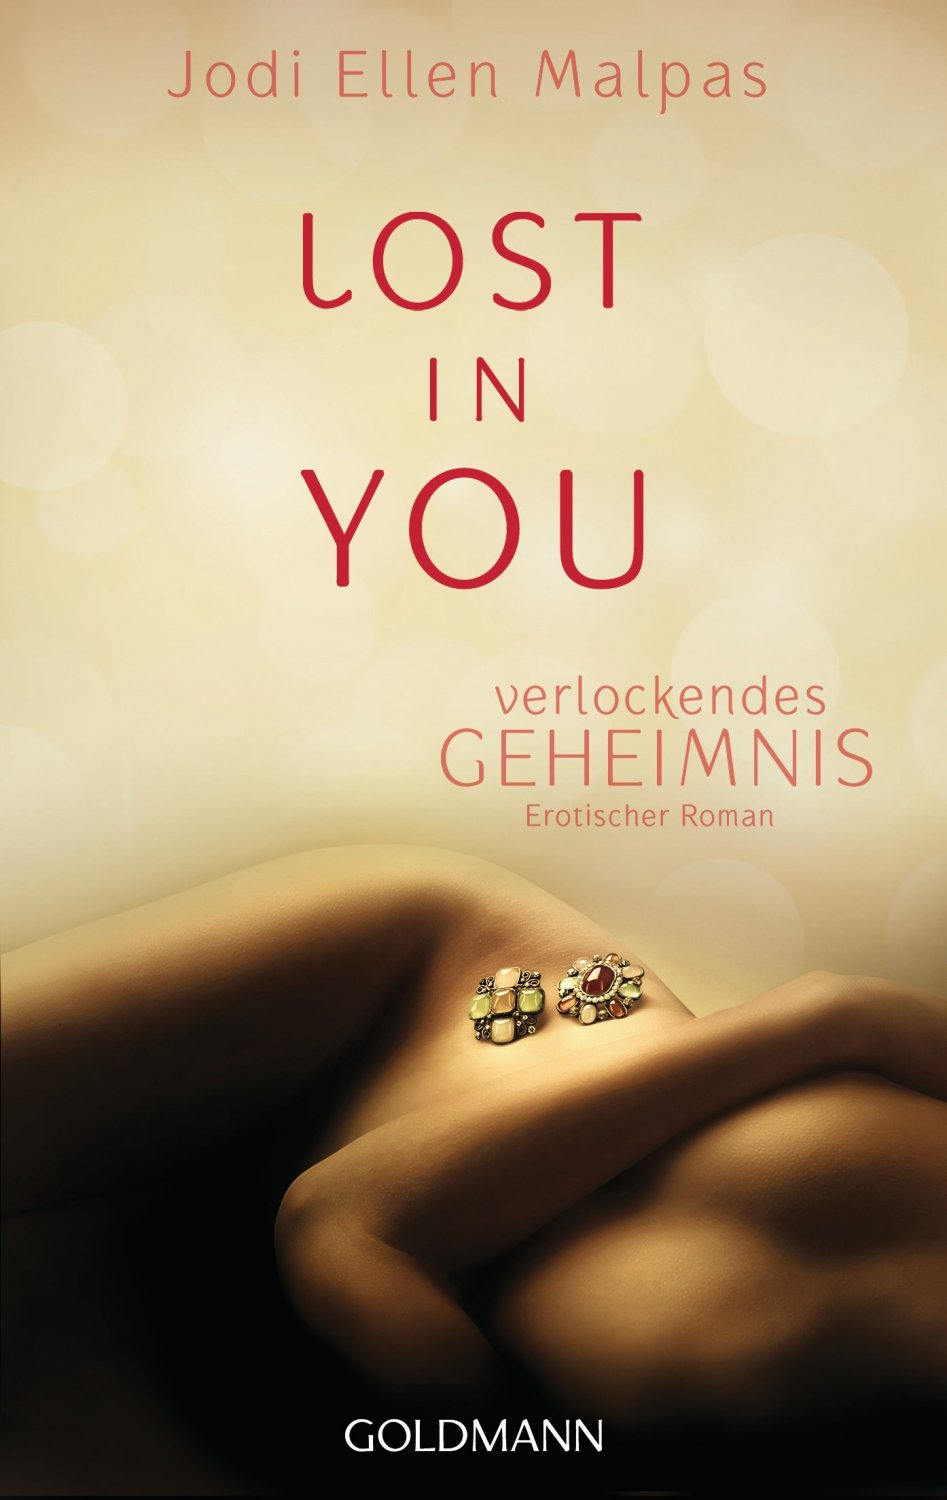 isbn 9783442481729 lost in you verlockendes geheimnis erotischer roman neu gebraucht kaufen. Black Bedroom Furniture Sets. Home Design Ideas